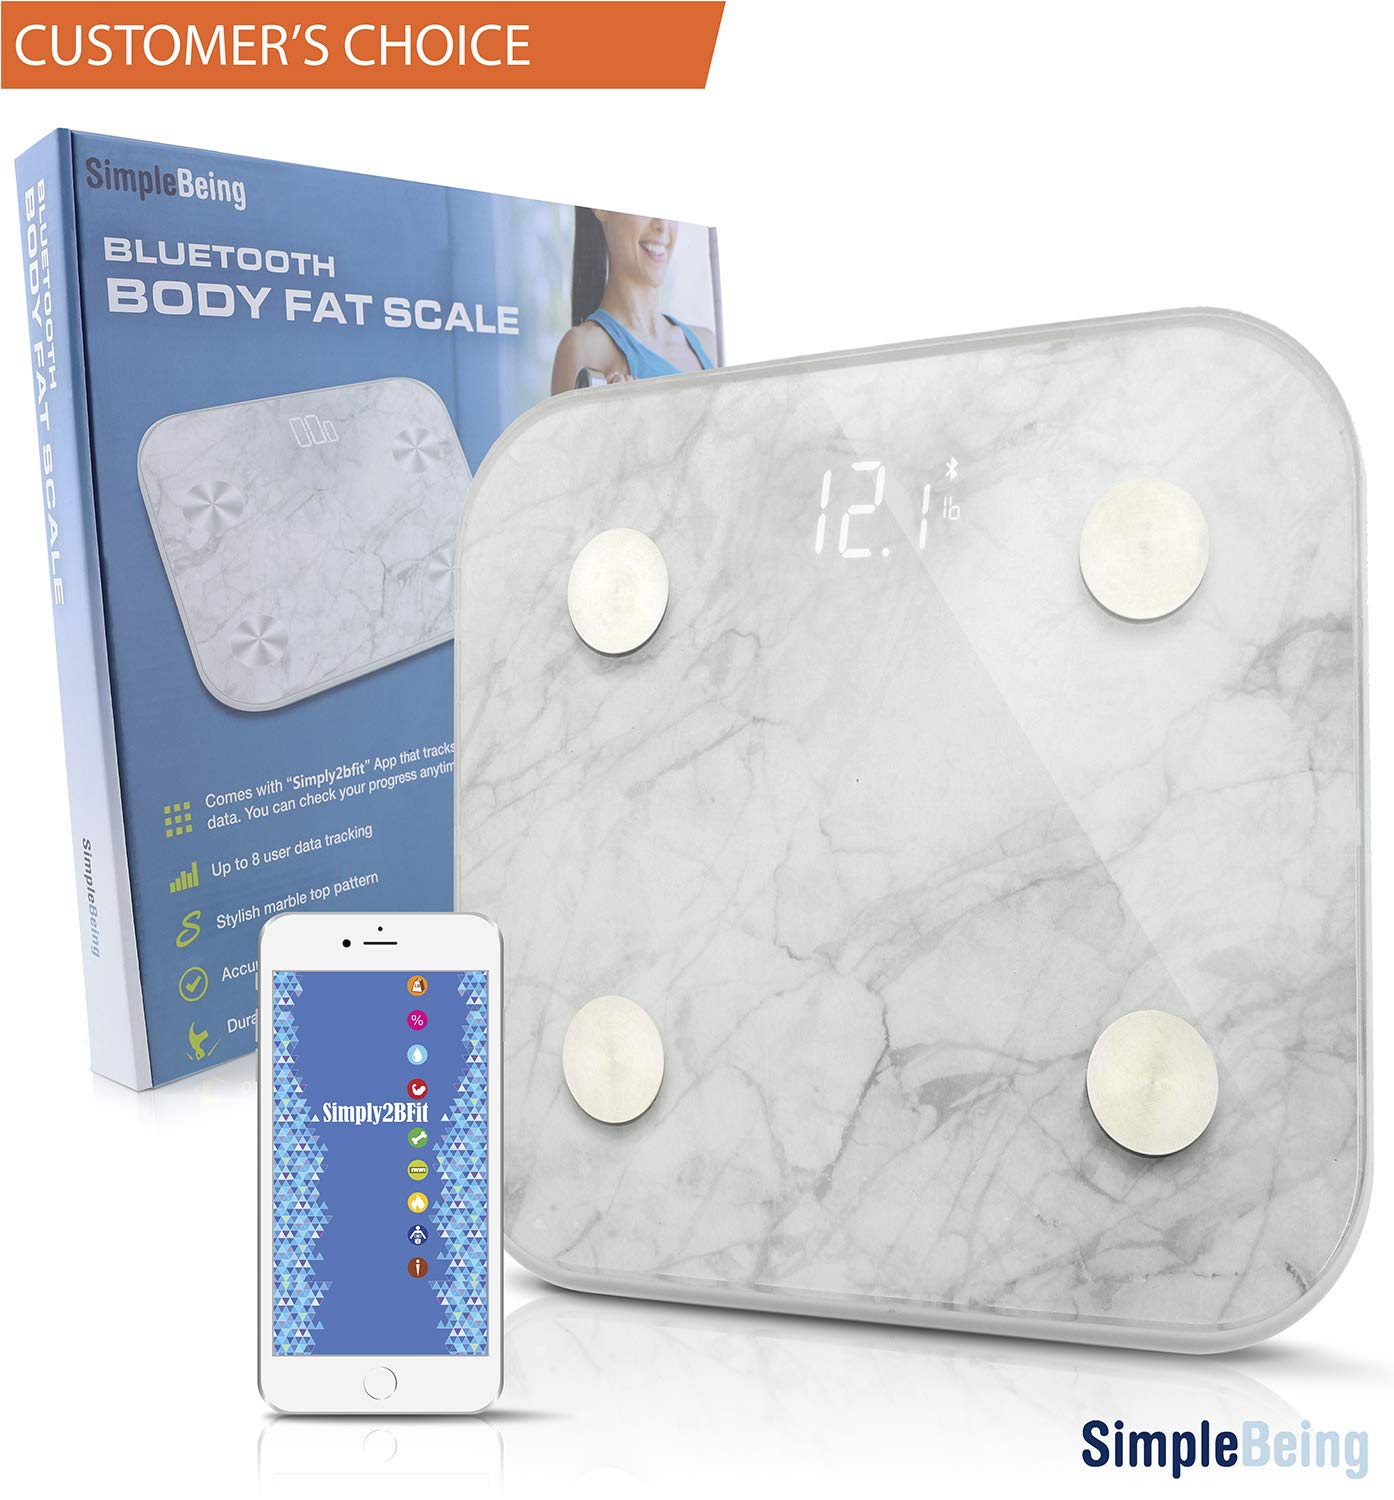 Simple Being Bluetooth Body Fat Scale, Smart Wireless Digital Bathroom Weighing Scale 400LB Capacity,